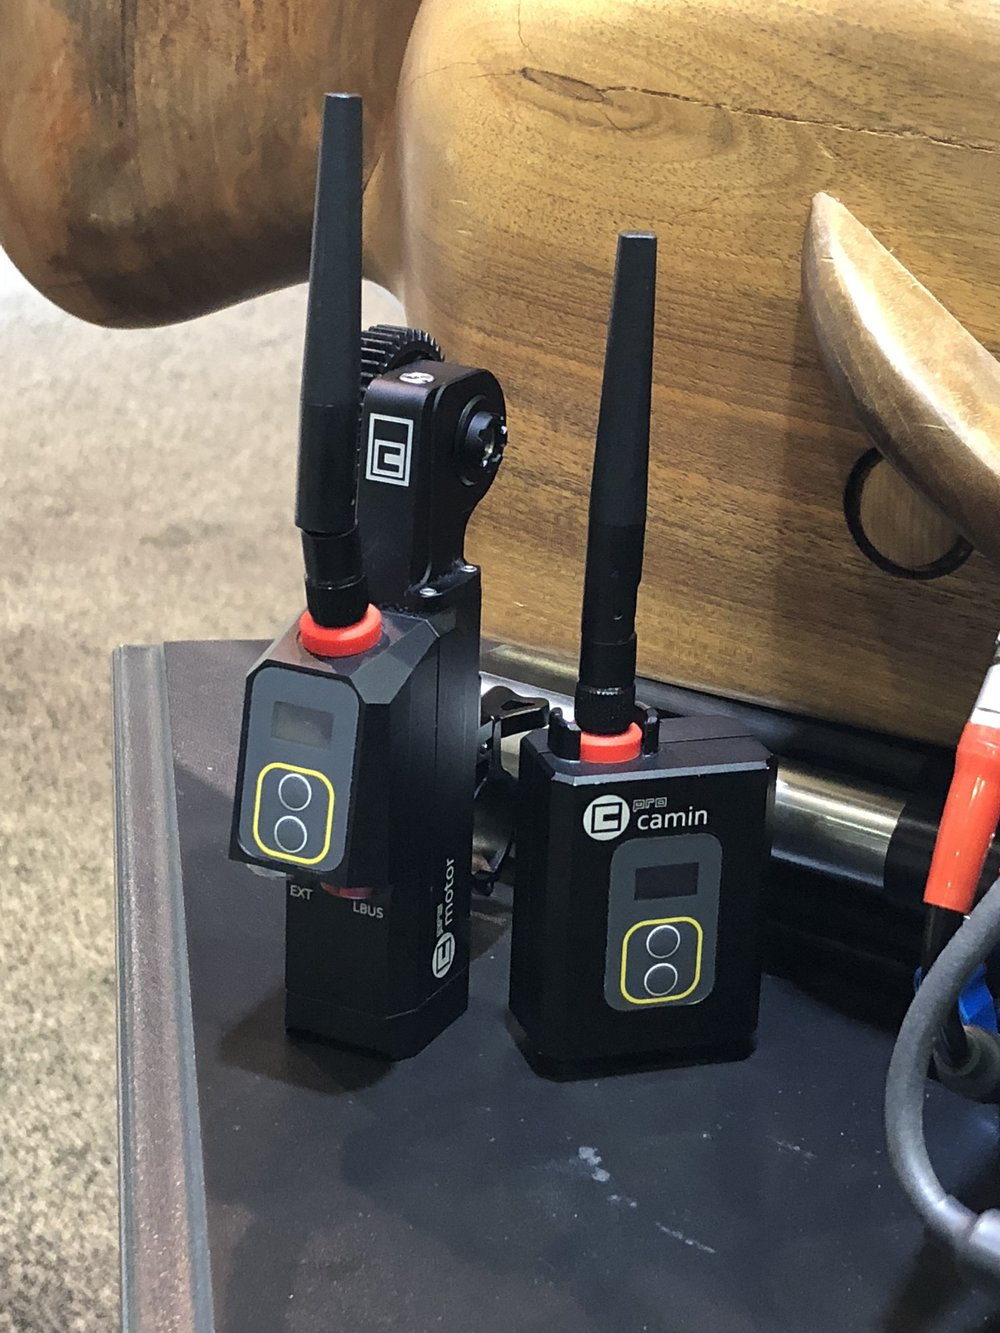 CMotion's new wireless kit, Camin